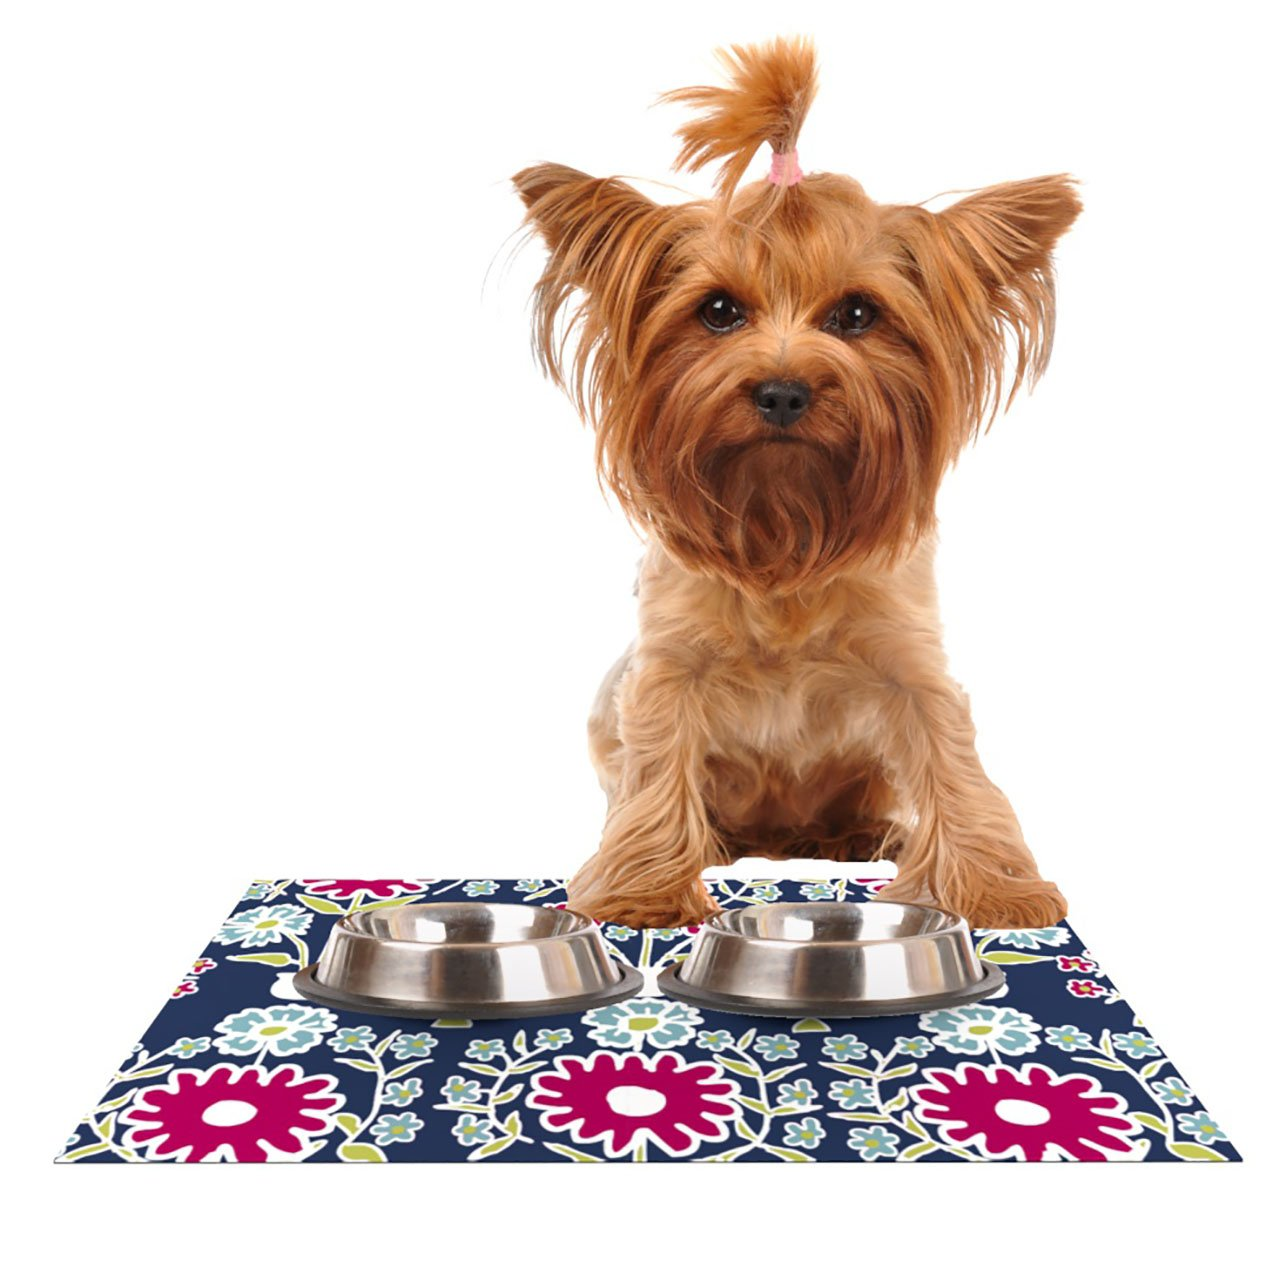 KESS InHouse Laura Nicholson Turkish Vase Pet Bowl Placemat for Dog and Cat Feeding Mat, 24 by 15-Inch, Navy Magenta